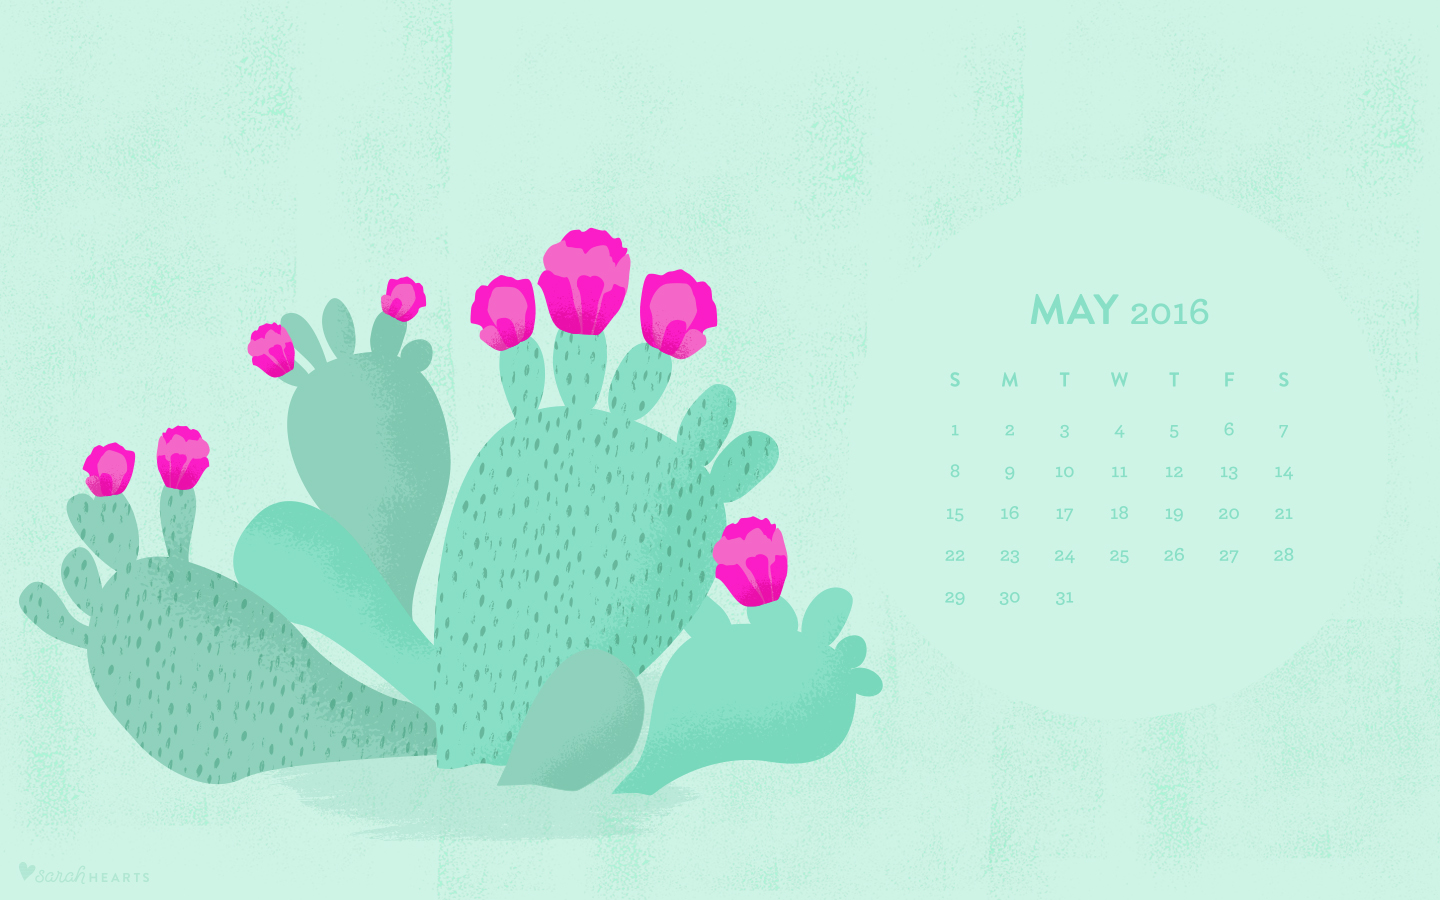 Create Your Own Iphone Wallpaper May 2016 Cactus Calendar Wallpaper Sarah Hearts